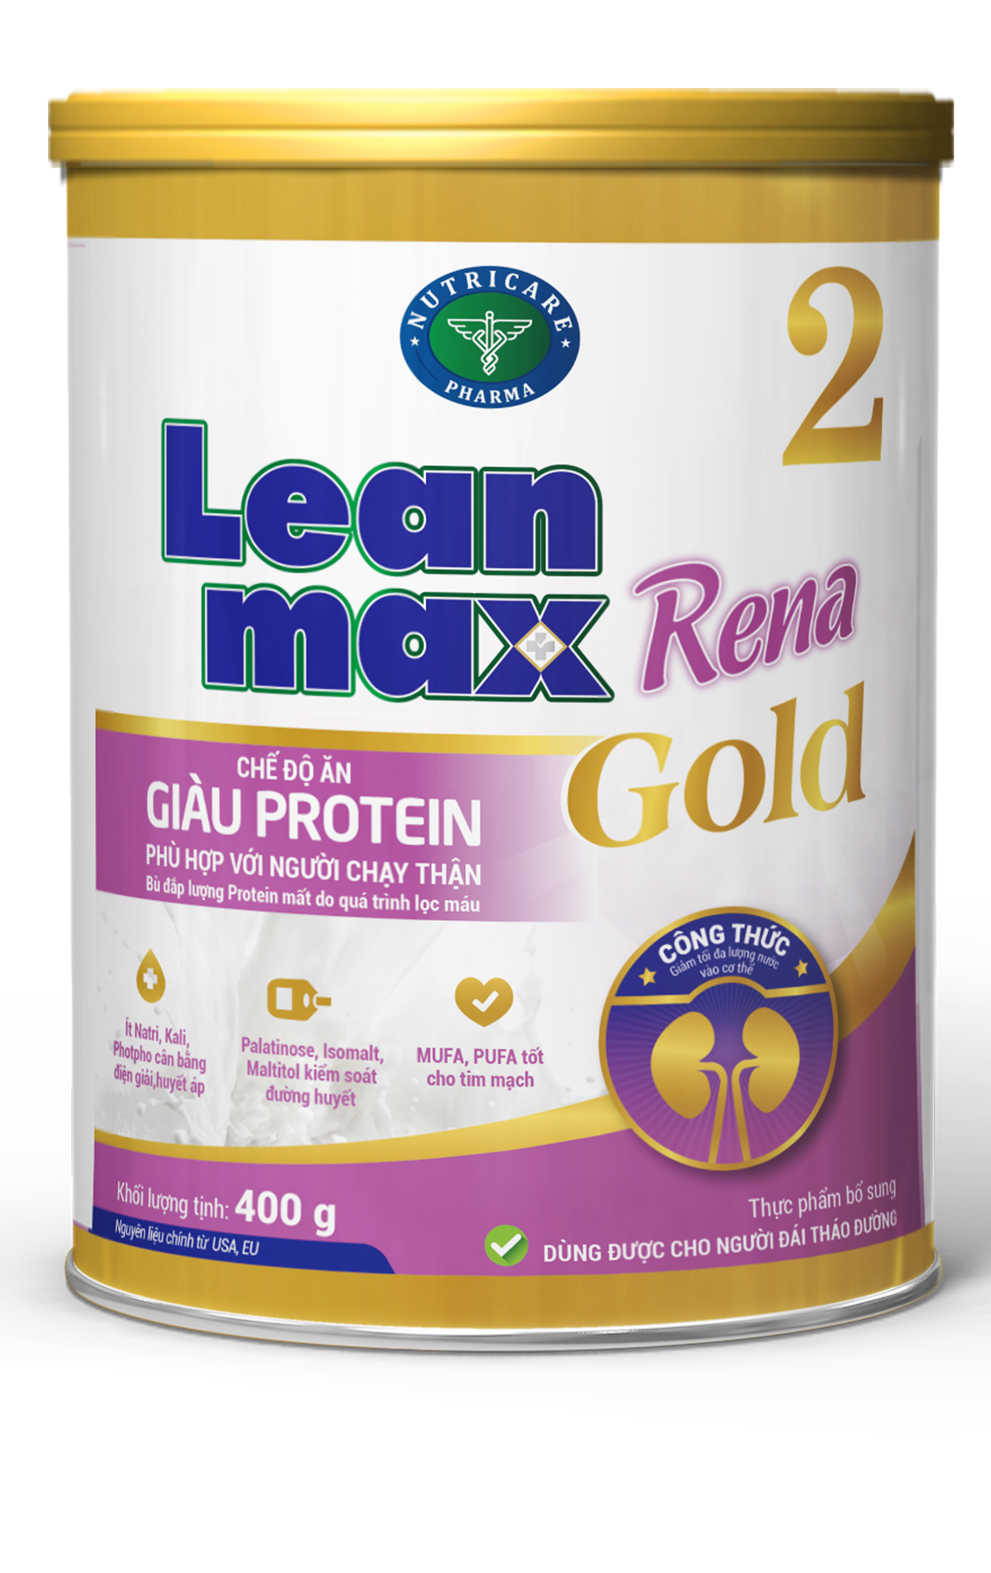 LEANMAX RENA GOLD 2